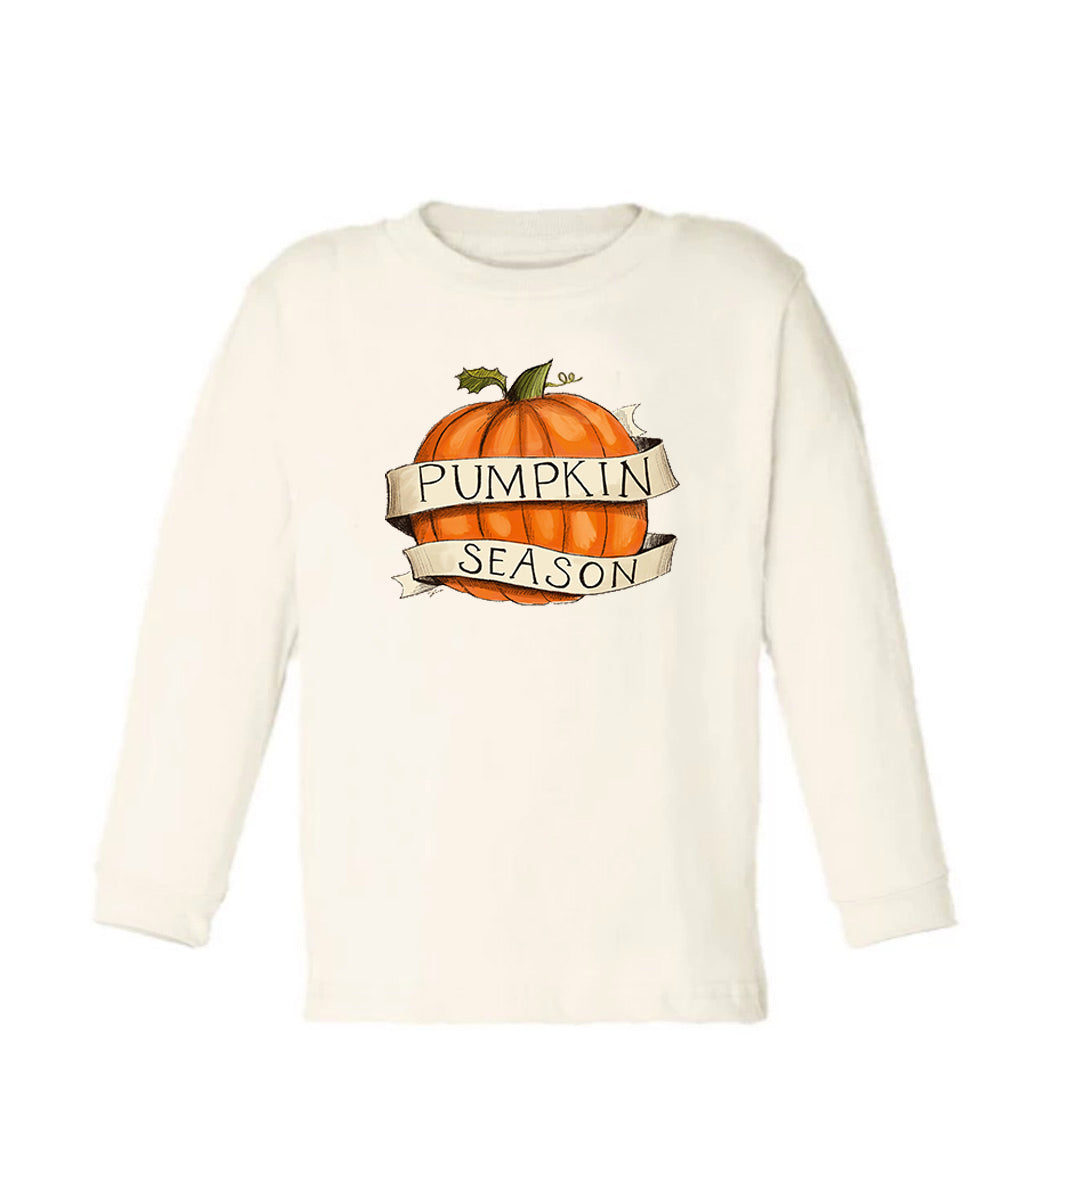 Pumpkin Season - Long Sleeved [Toddler Tee]